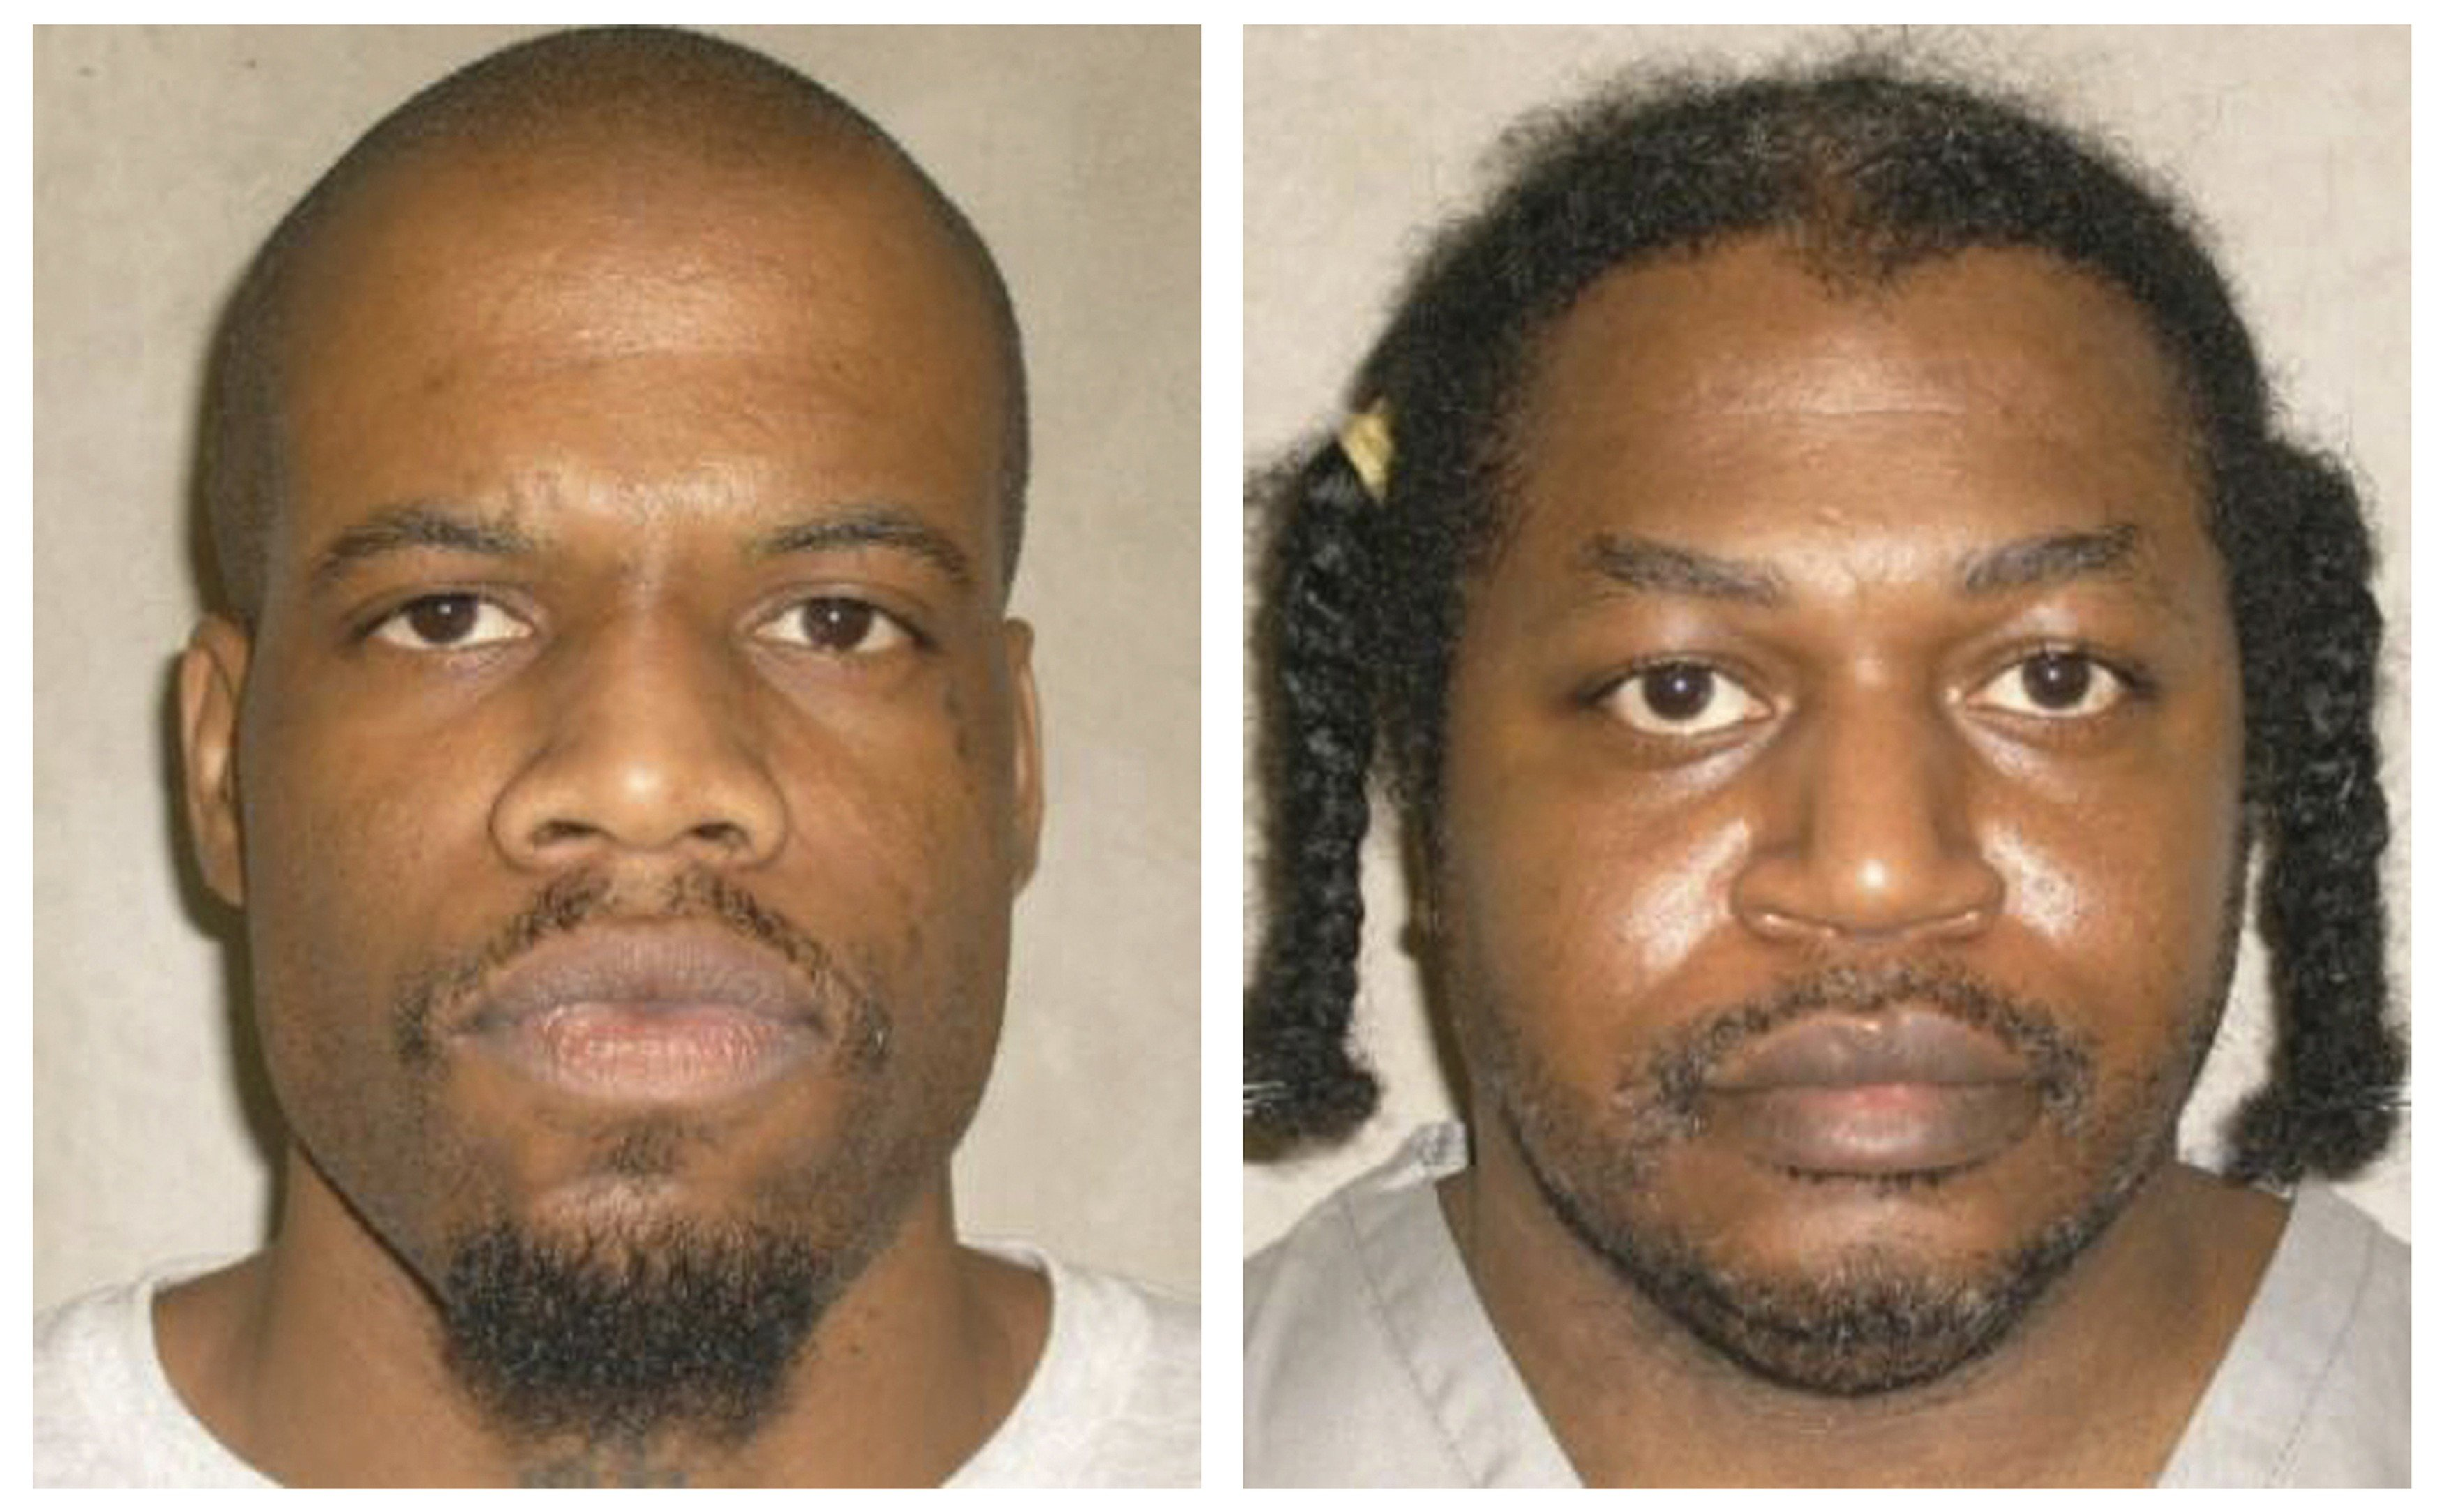 Death row inmates Charles Warner, right, and Clayton Lockett are seen in a combination of pictures from the Oklahoma Department of Corrections dated June 29, 2011.